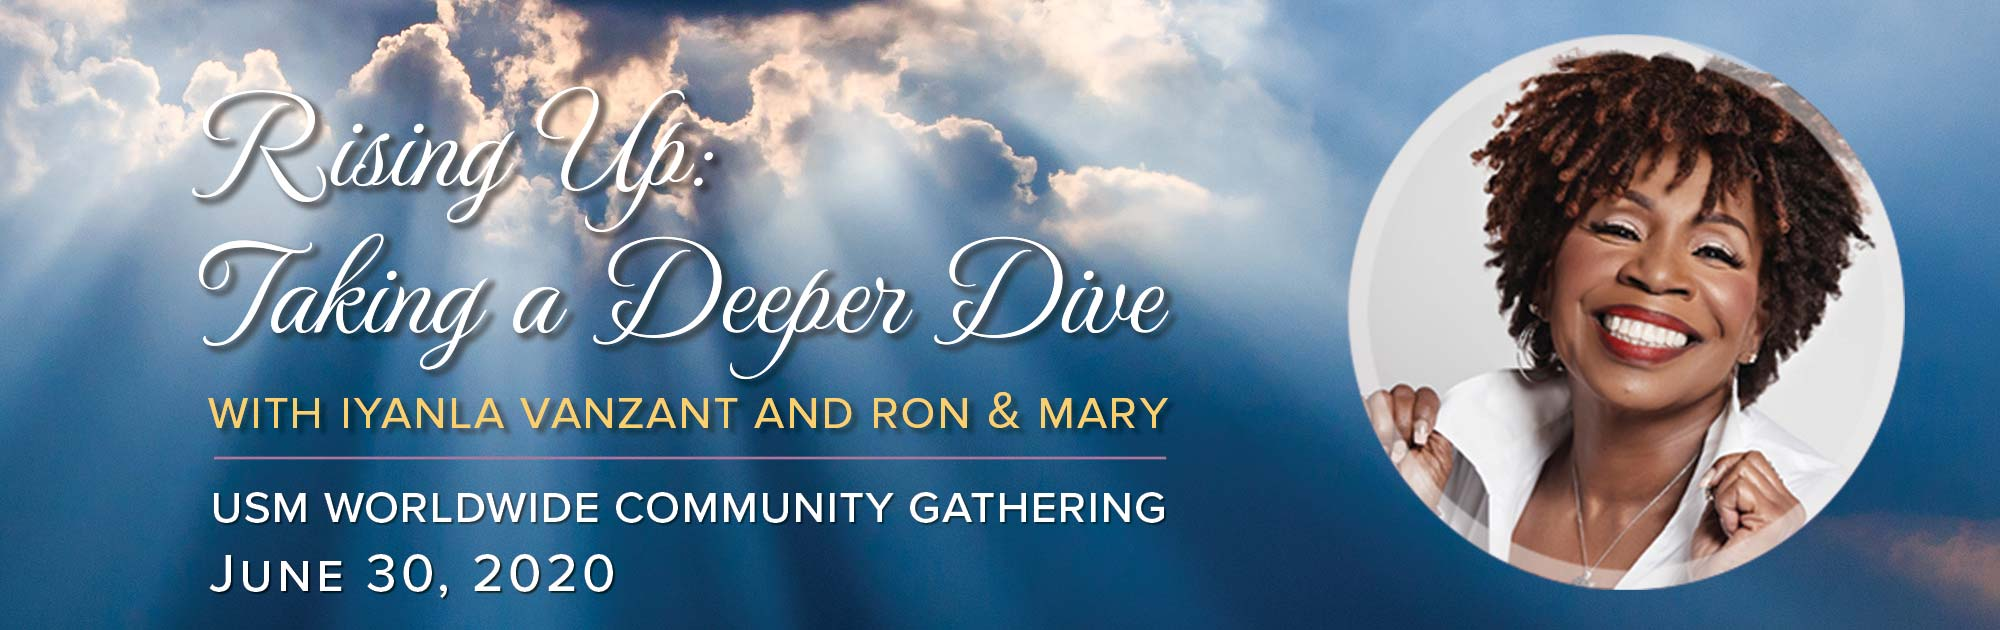 Rising Up - A Deeper Dive Into the Evolution of Consciousness with Iyanla Vanzant and Ron & Mary